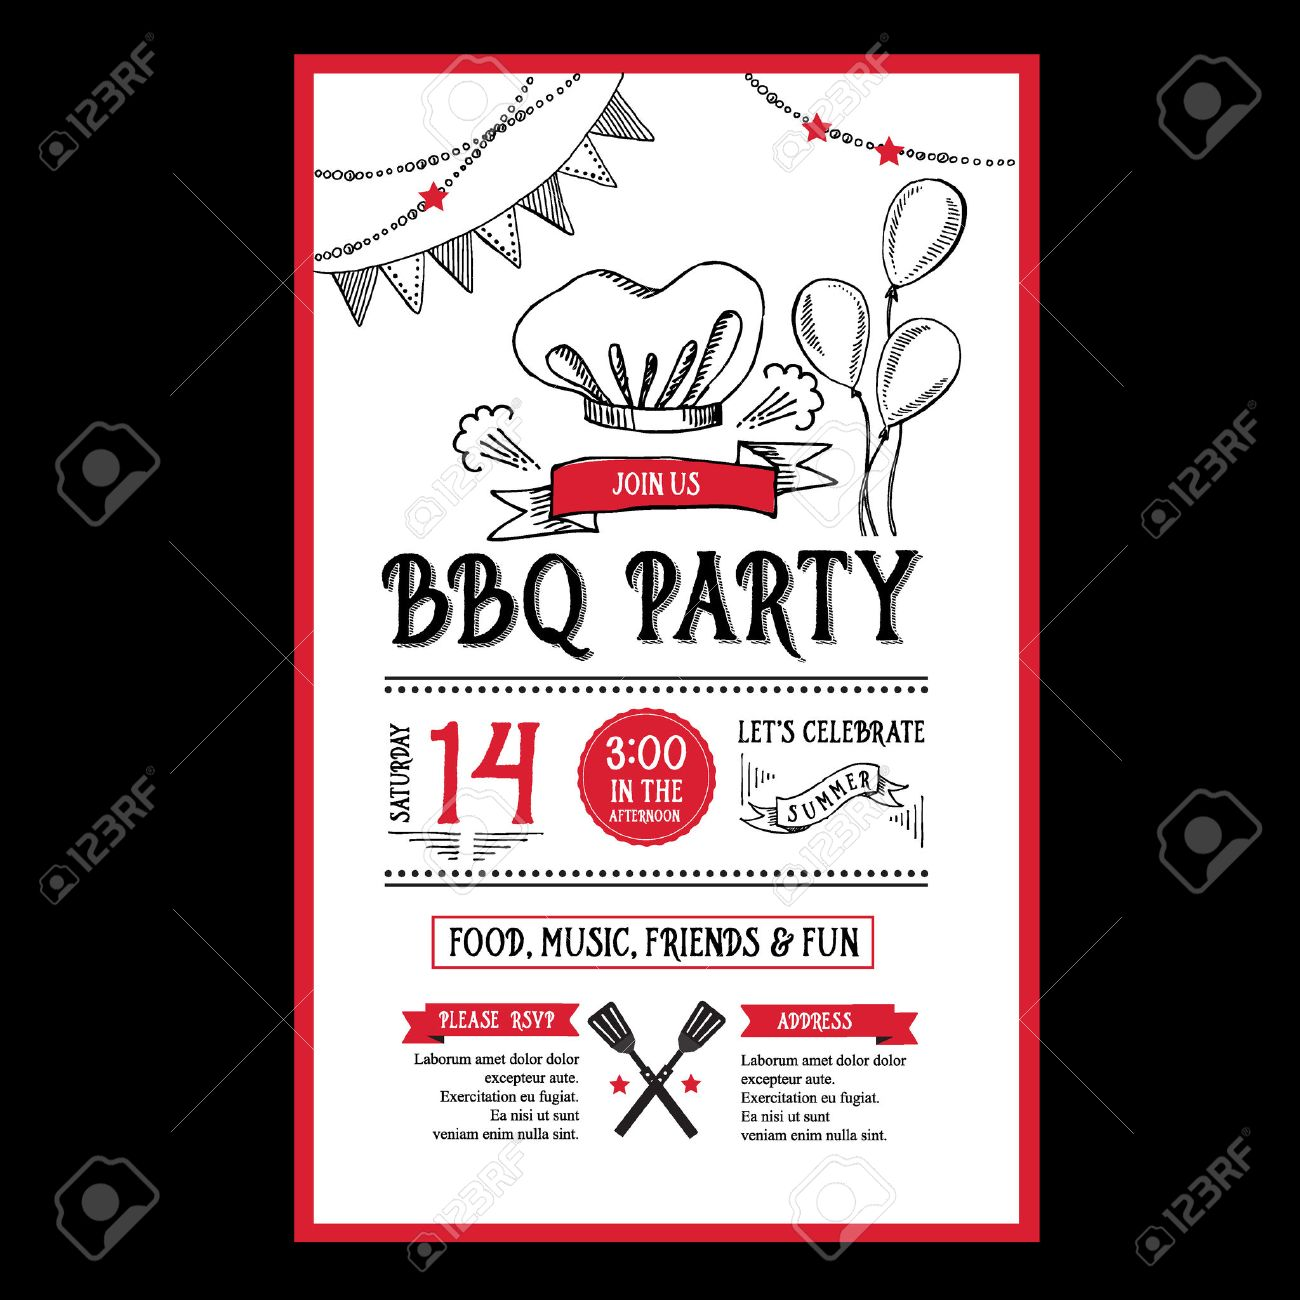 Party Invitation Flyer Gallery - Party Invitations Ideas